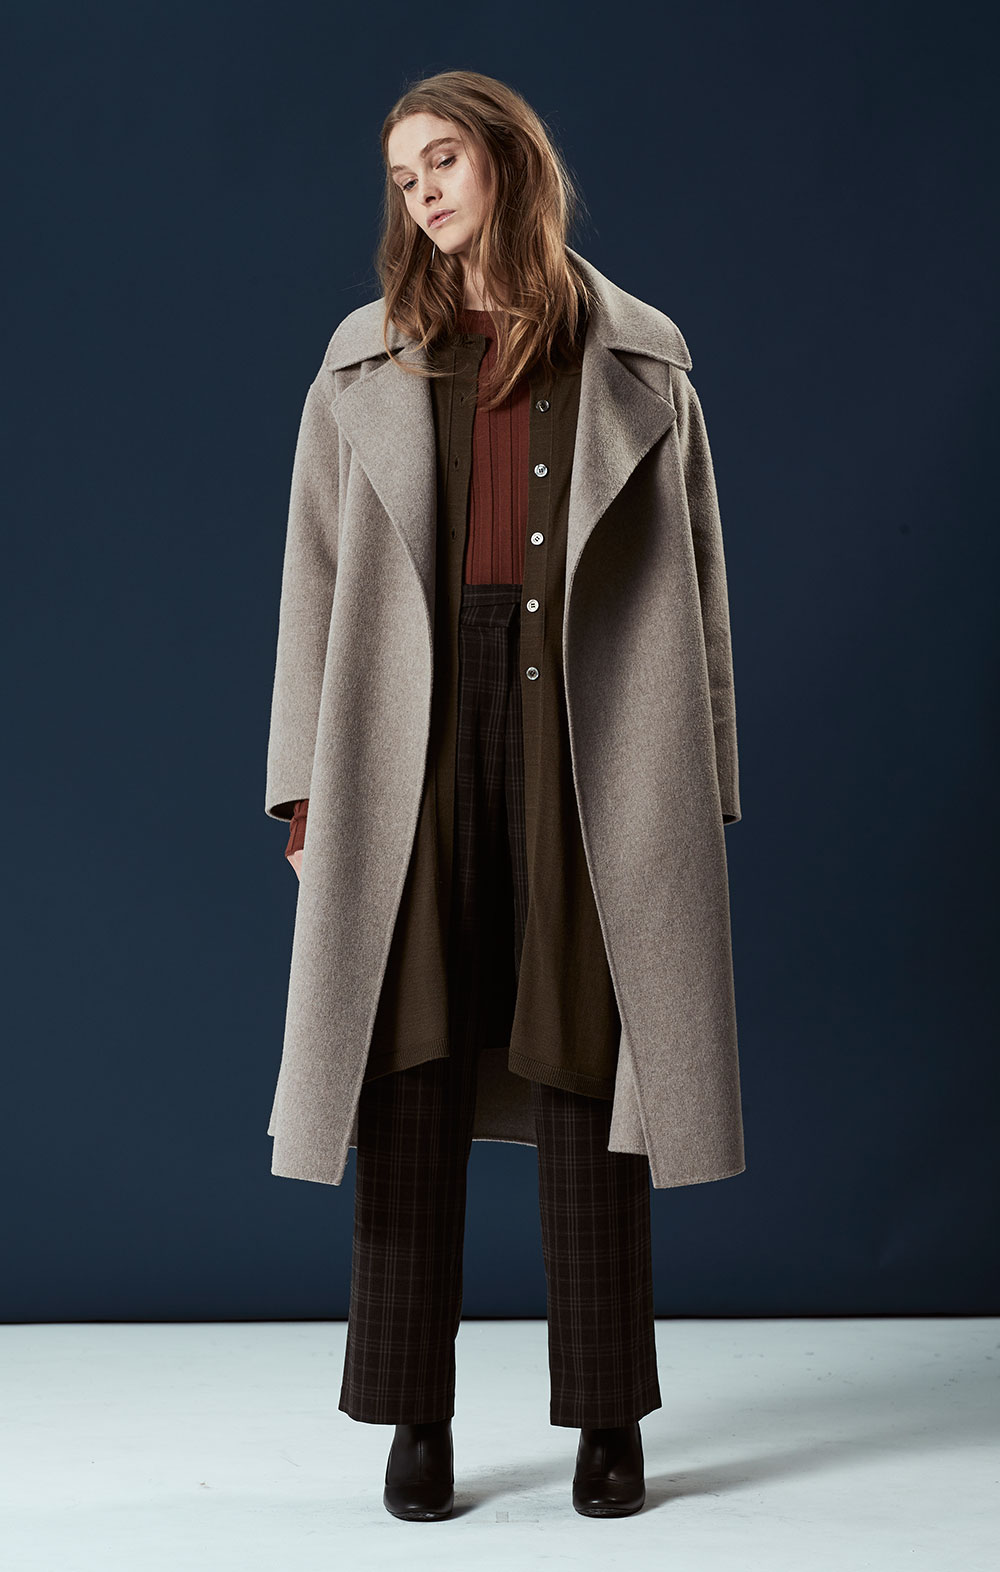 Wool-blend Handmade Coat FBJ072-TAU Cashmere-blend Side Slit Cardigan FBK010-OLV Long Sleeve Ribbed Pullover FBK012-BRN Tie Front Wide-leg Pants FBP035-BRN